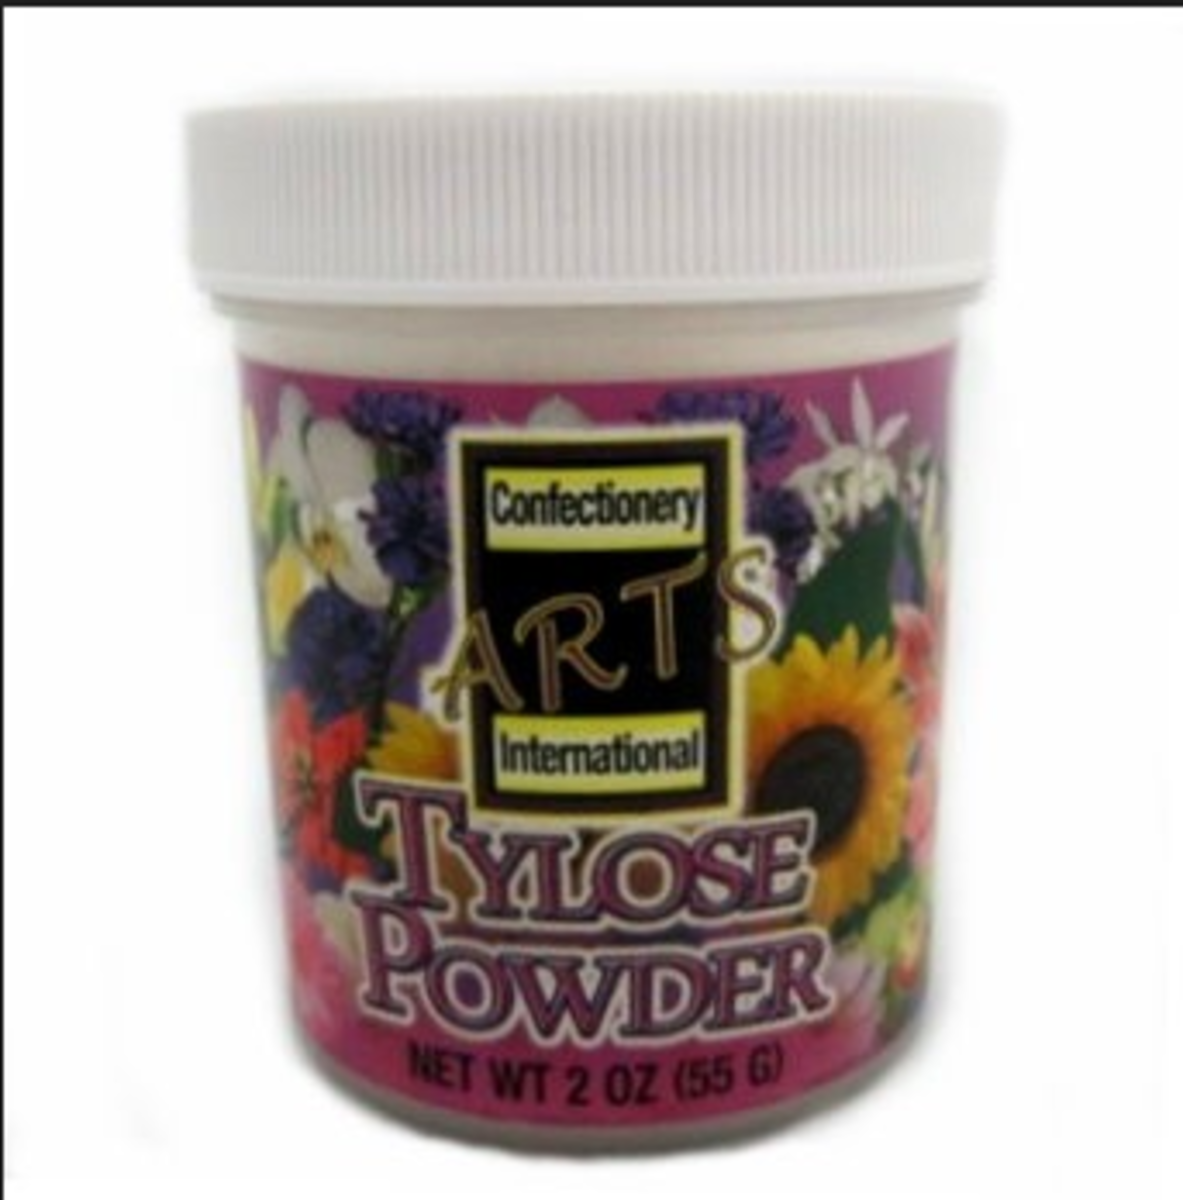 A tub of tylose powder.